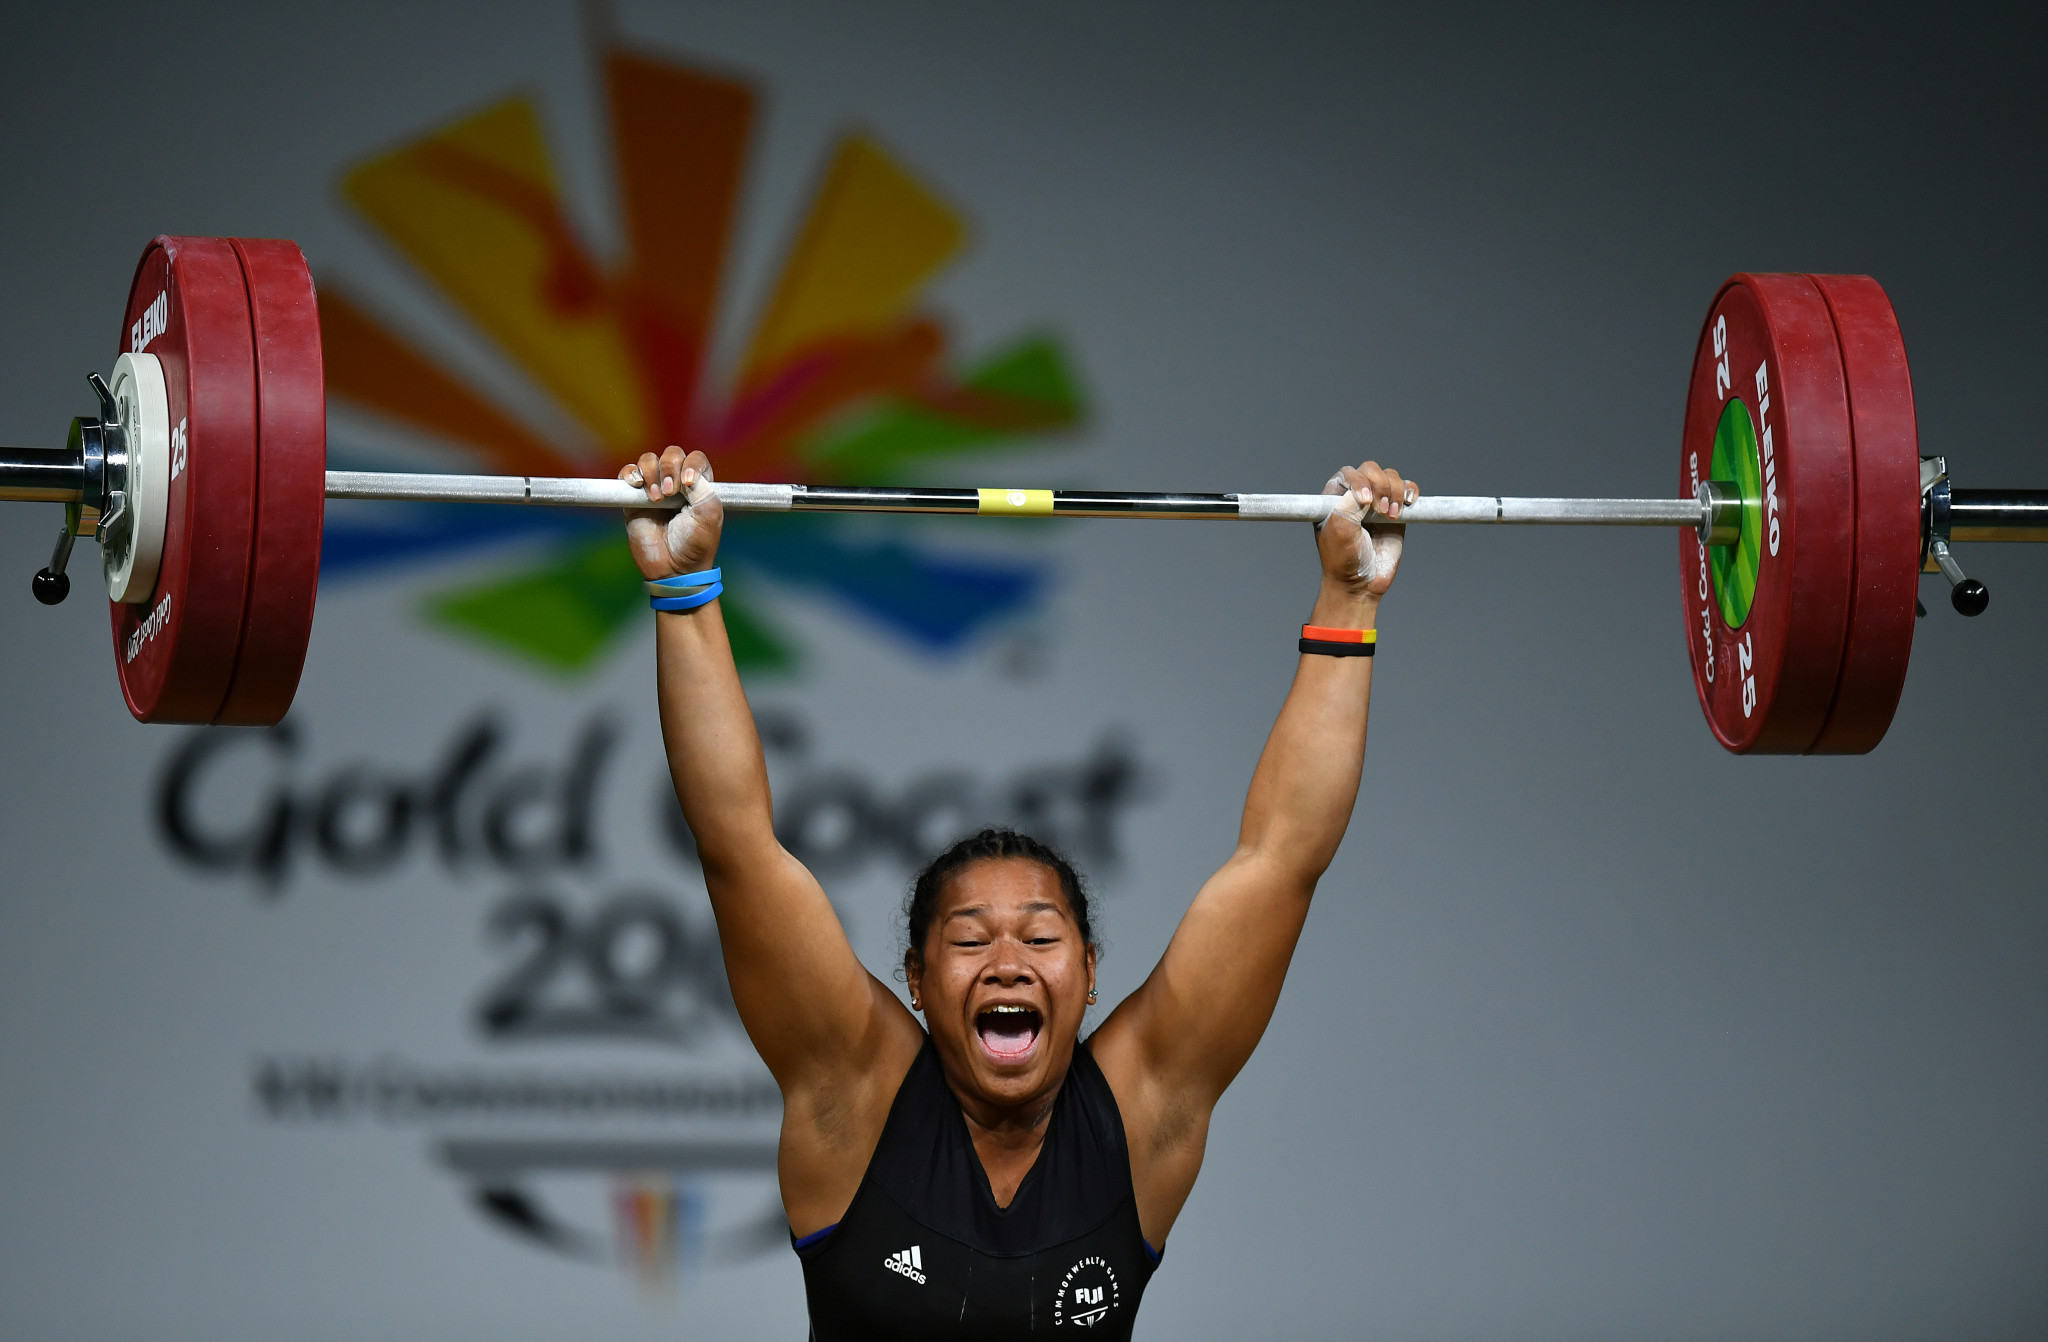 Eileen Cikamatana secured Fiji's first gold medal of Gold Coast 2018 by winning the women's 90kg competition ©Getty Images